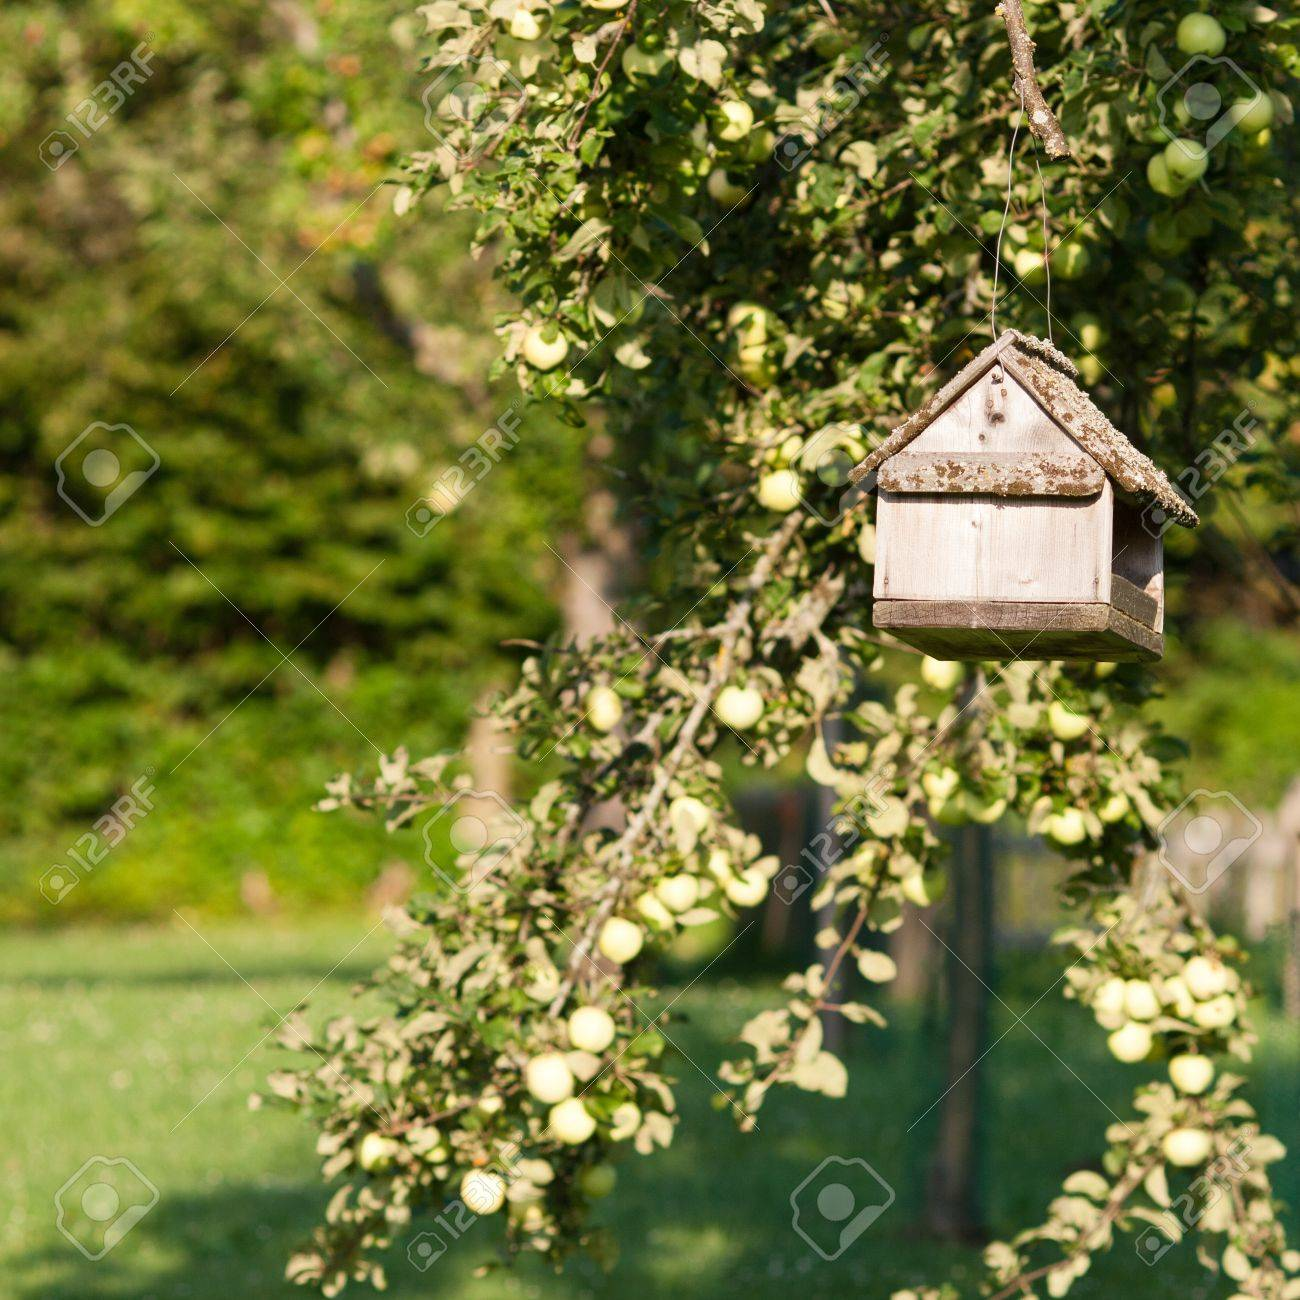 Bird table/feeder suspended from a tree in a country orchard lit by summer sunshine Stock Photo - 11801805